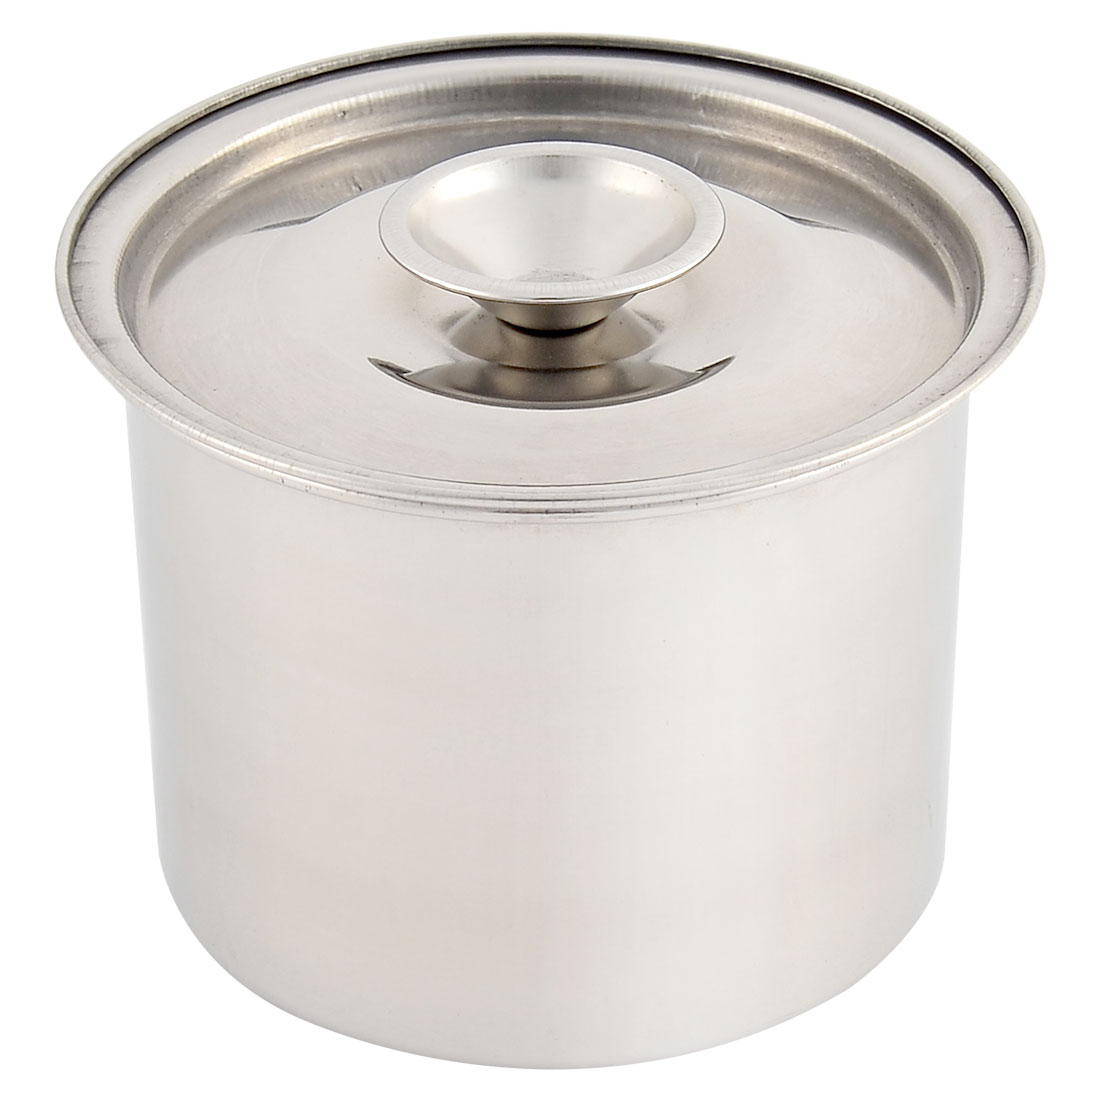 Kitchen Stainless Steel Food Soup Salad Egg Bowl Container 10cm Diameter